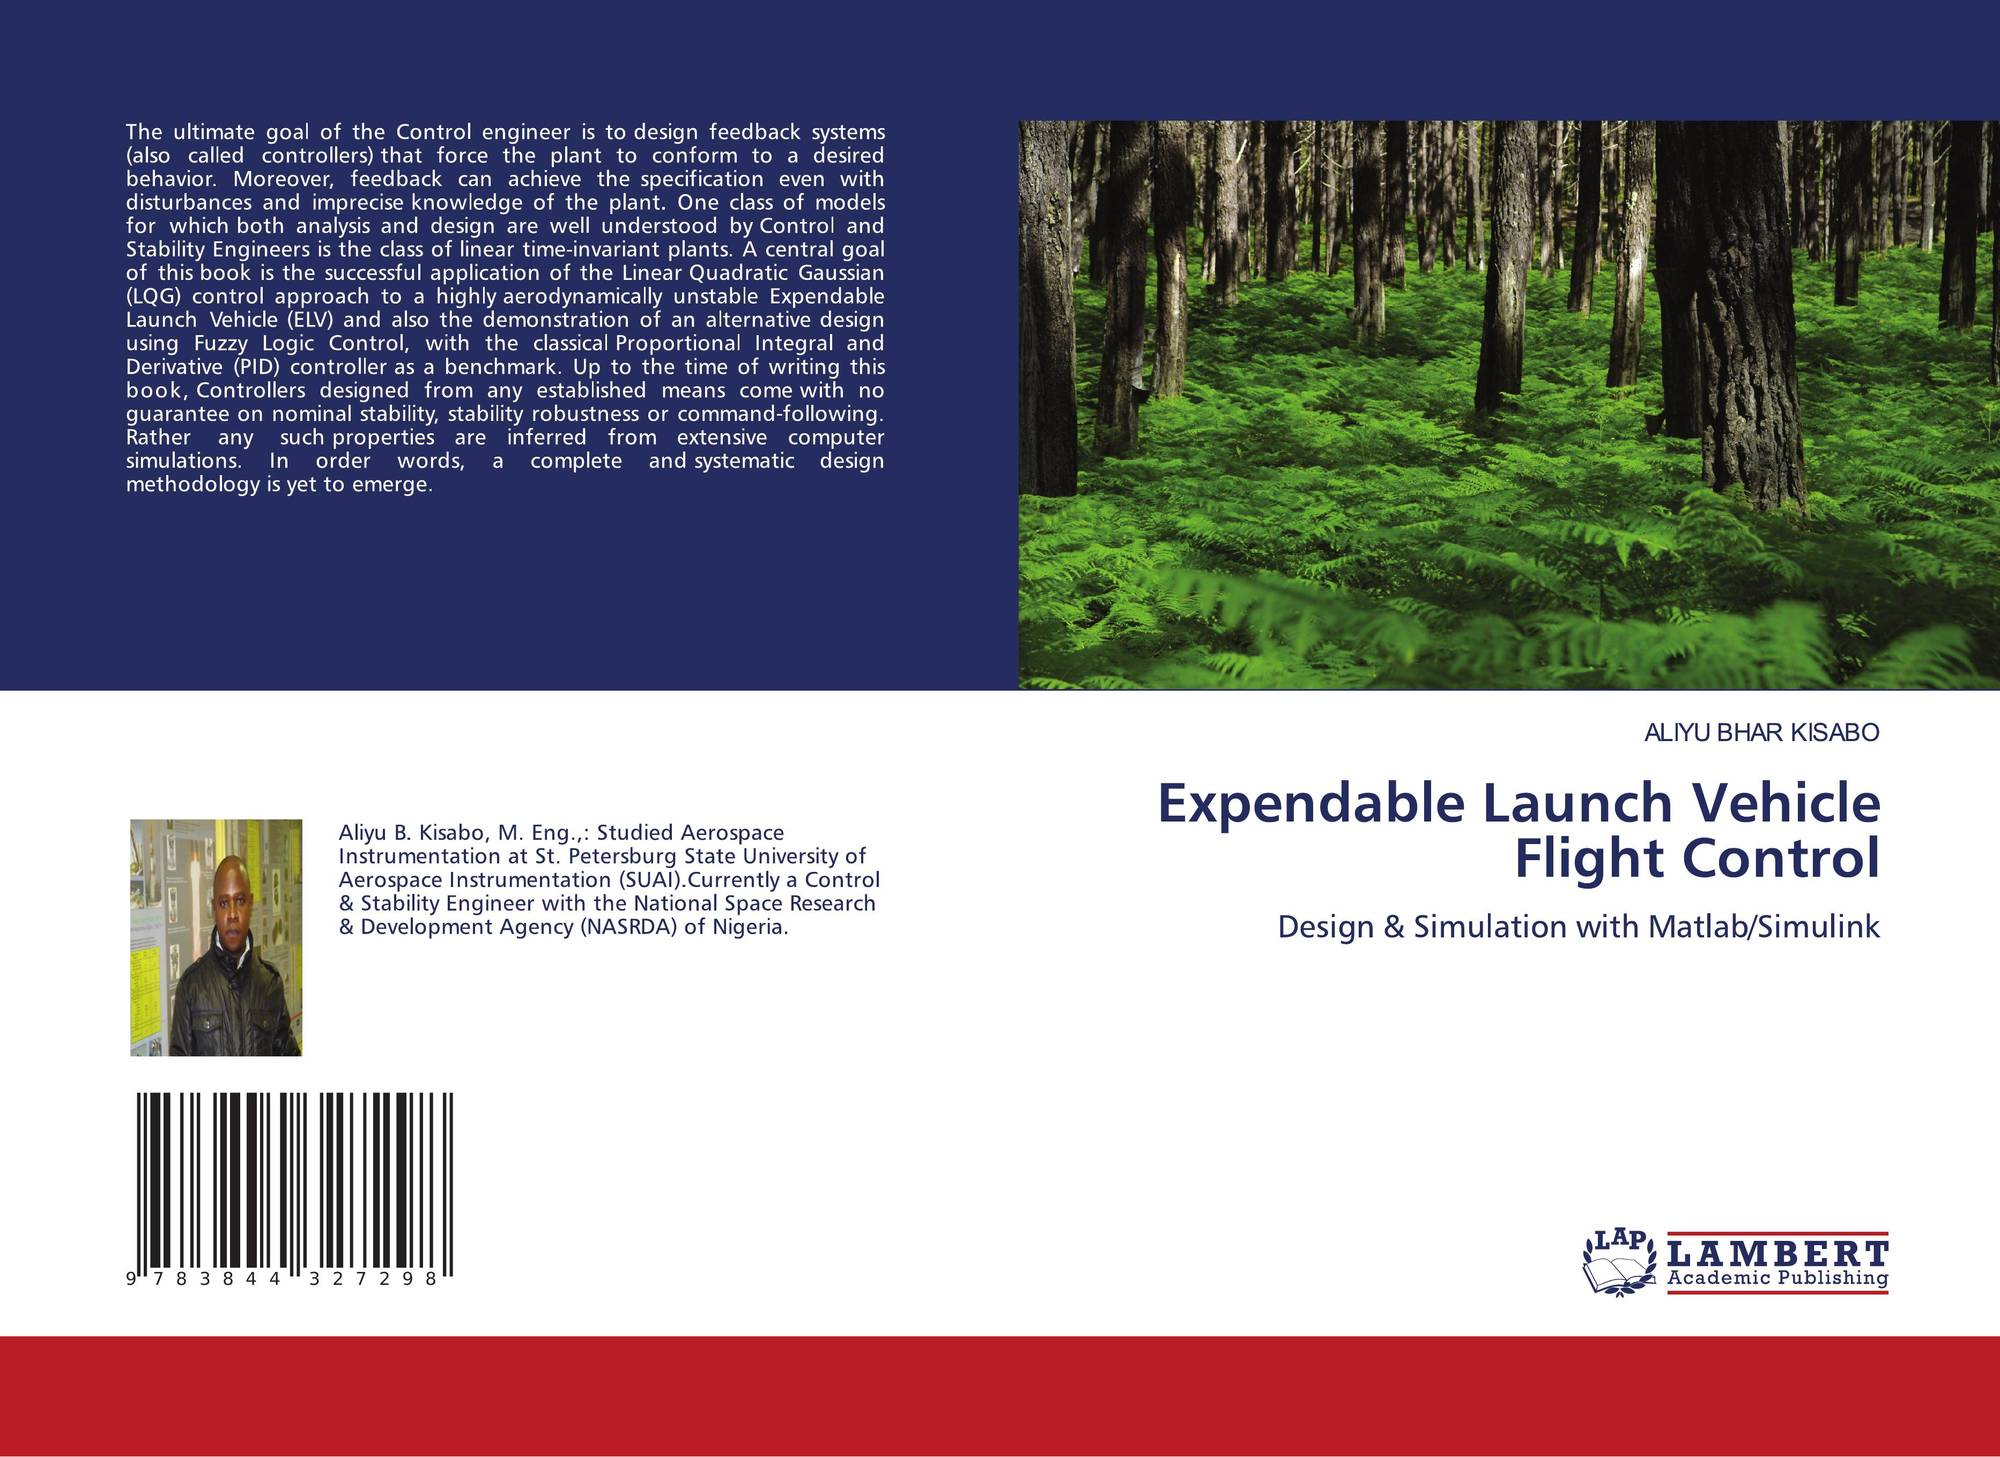 Expendable Launch Vehicle Flight Control, 978-3-8443-2729-8